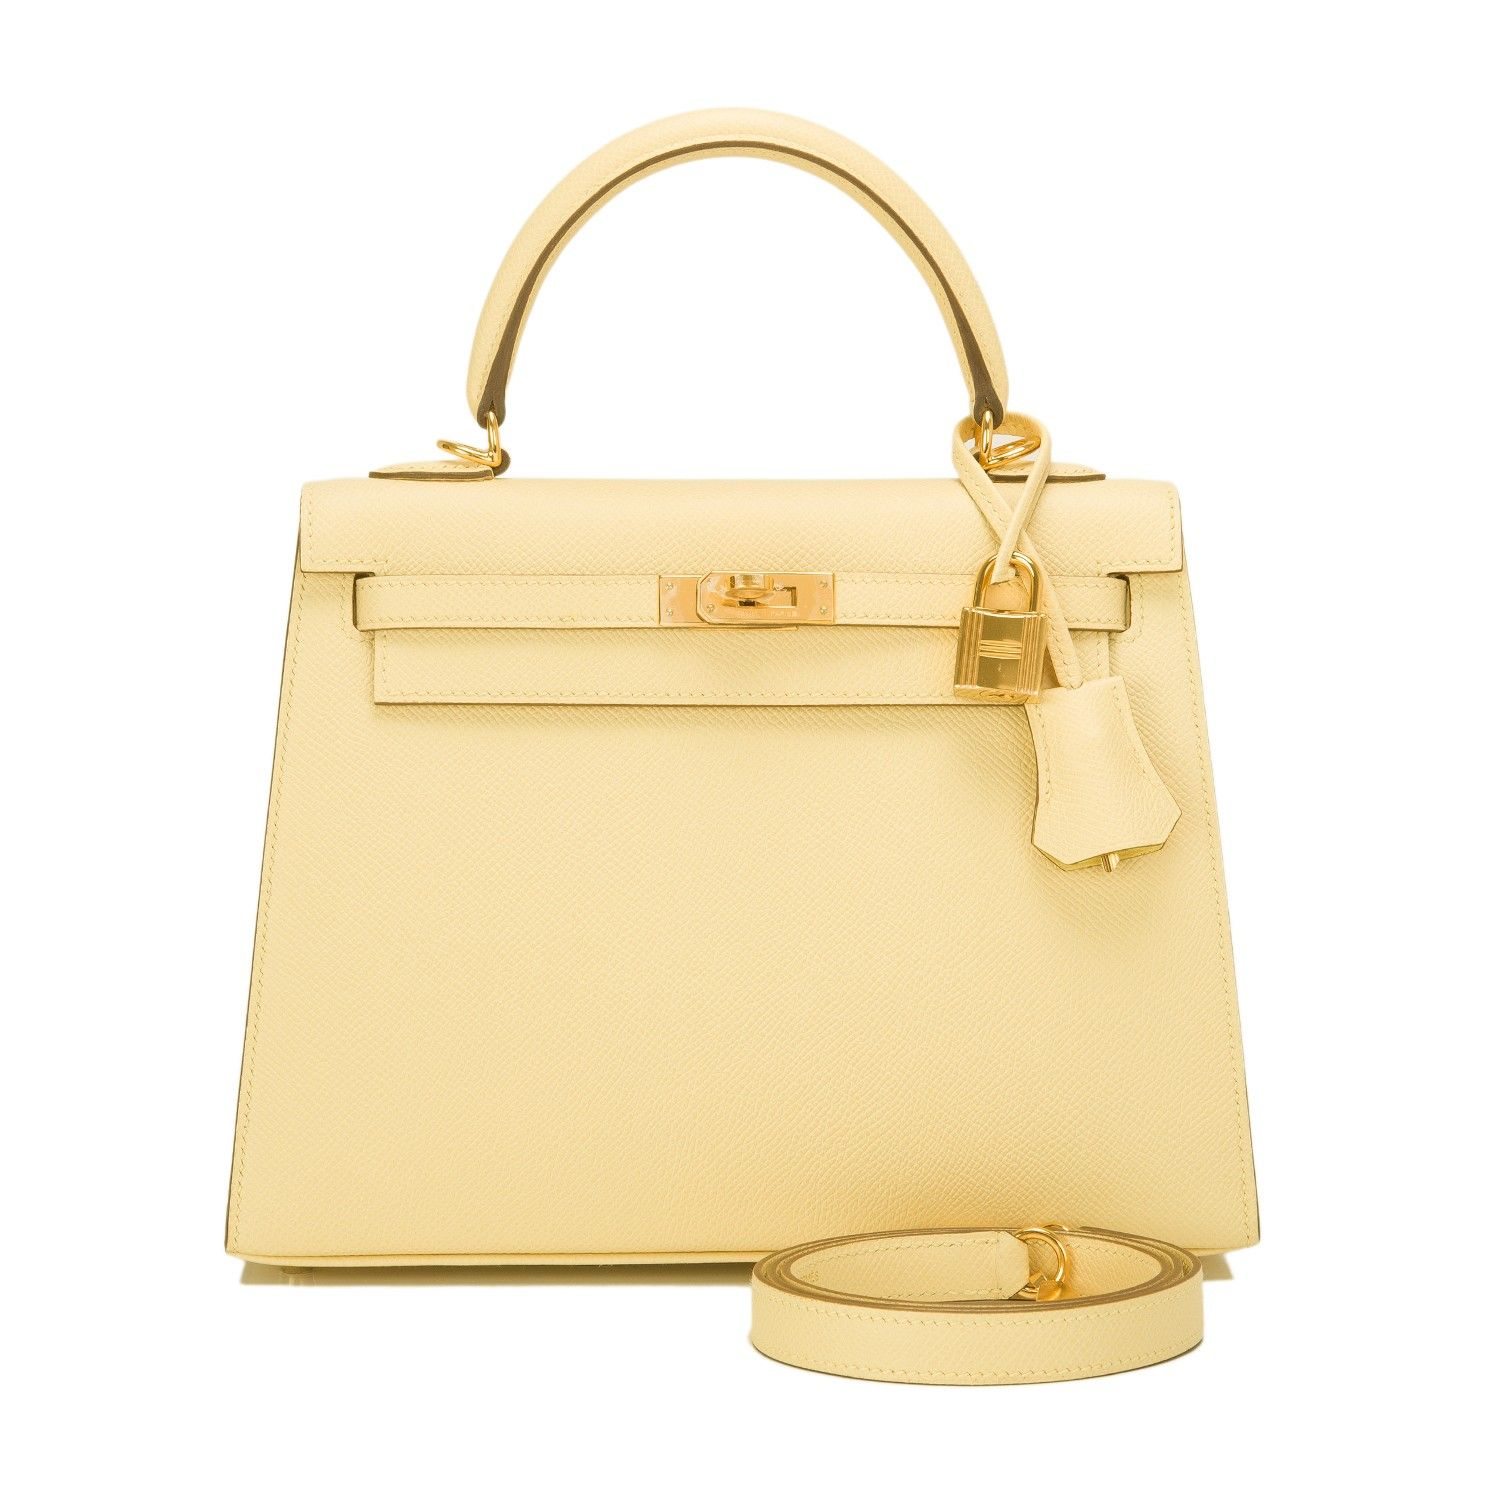 Hermes Jaune Poussin Epsom Sellier Kelly 25cm Gold Hardware - Hermes Jaune Poussin Sellier Kelly 25cm in epsom leather with gold hardware.  The bag features tonal stitching, front toggle closure, clochette with lock and two keys, single rolled handle and optional shoulder strap.  The Interior is lined in Jaune Poussin chevre and features one zip pocket with Hermes engraved pull and two open pockets on opposite side.  Collection: T  Origin: France  Condition: Pristine; never carrie...